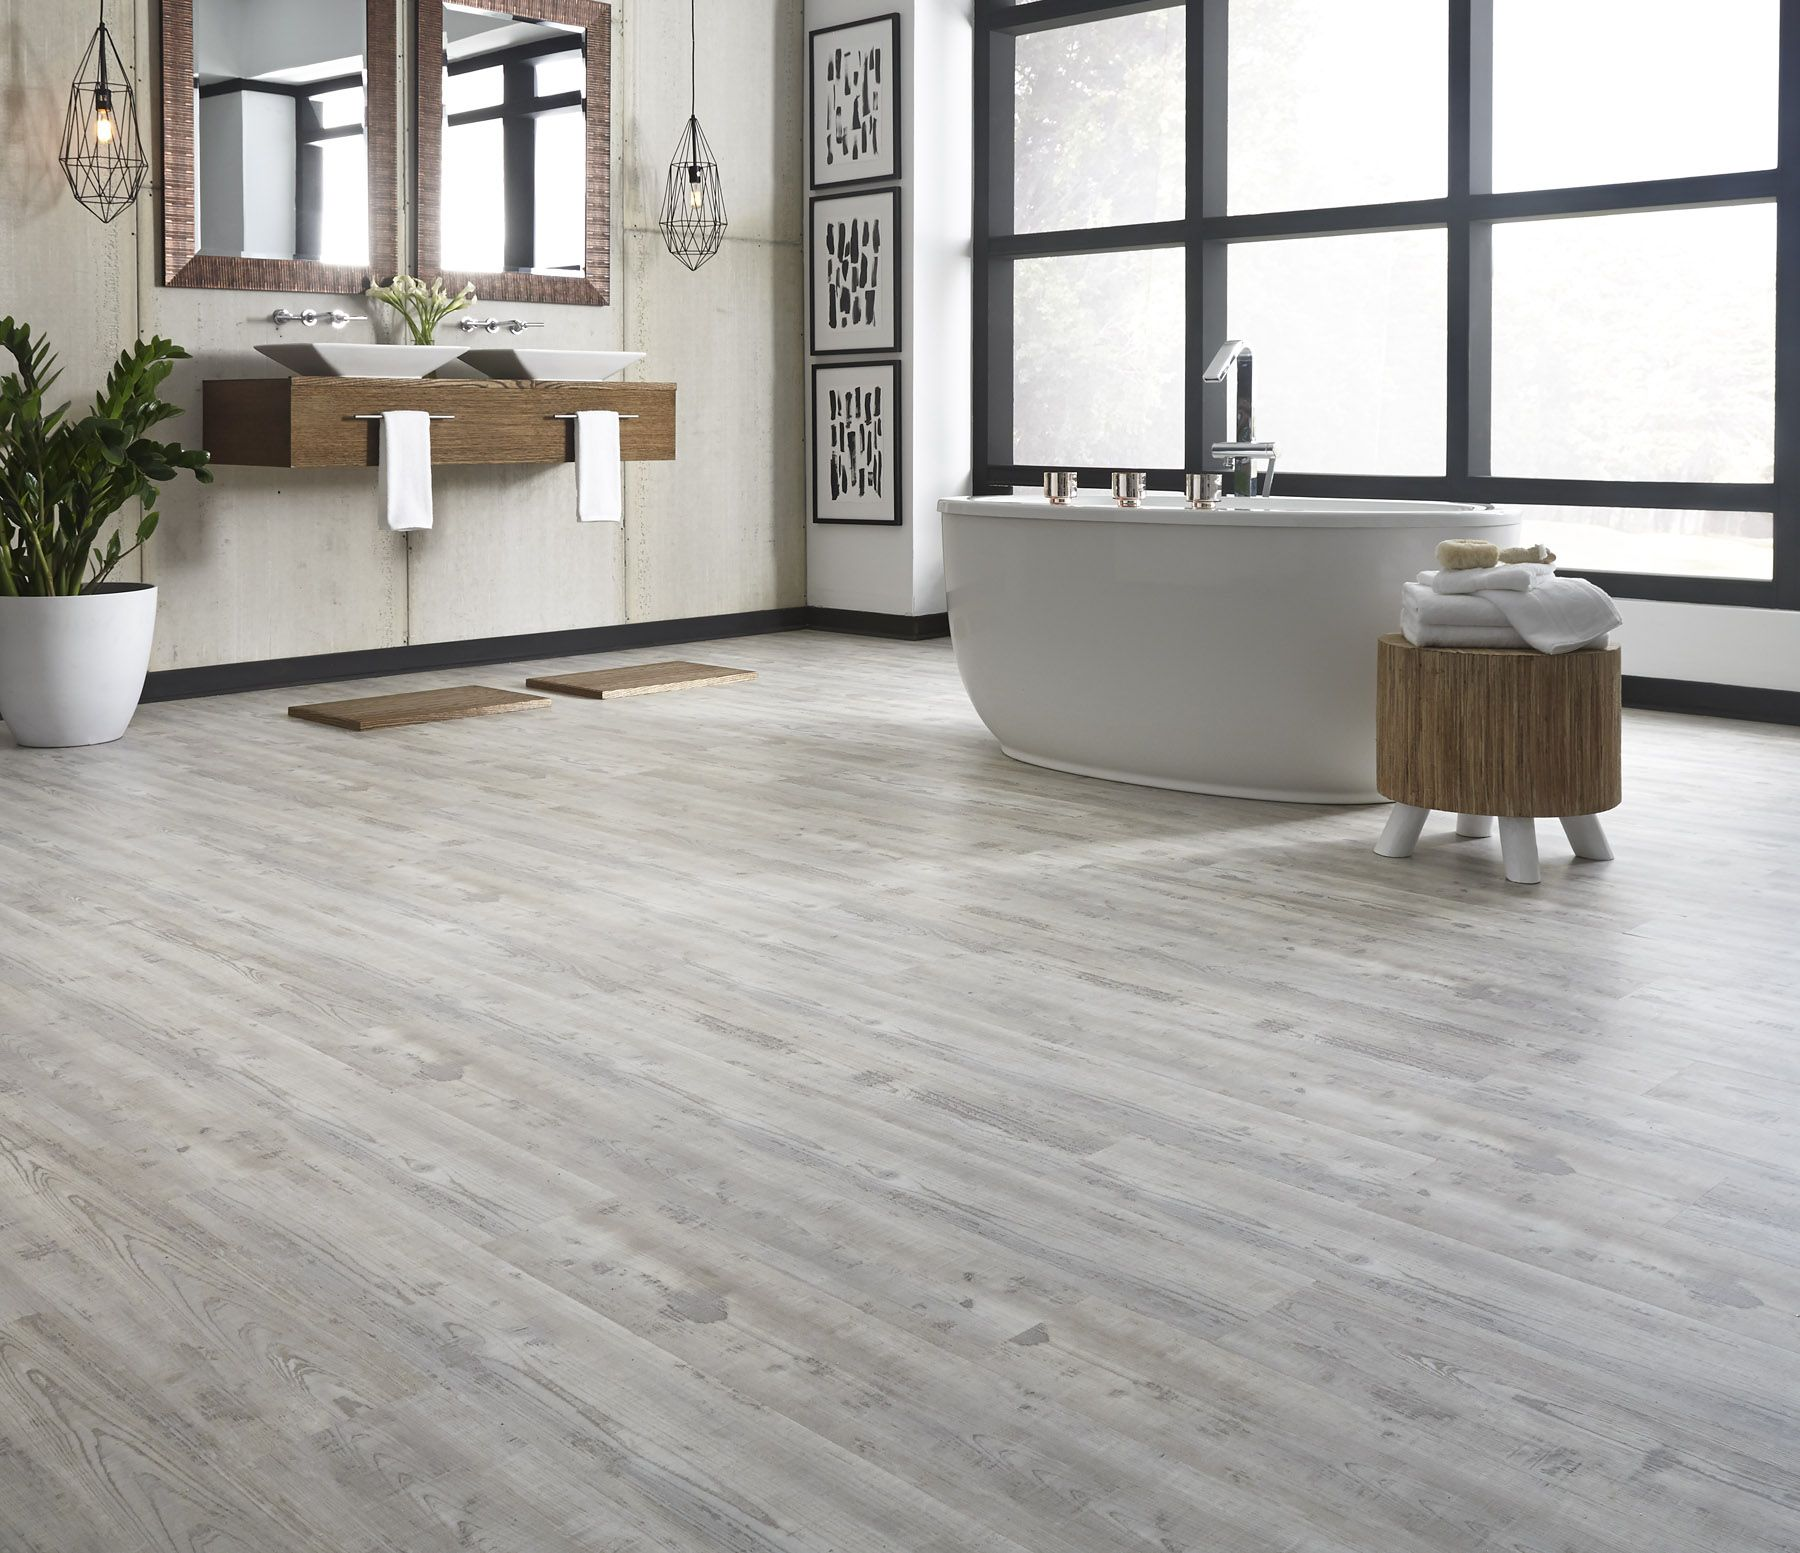 Weathered Gray Pine Engineered Vinyl Plank Engineered Vinyl Plank Grey Vinyl Plank Flooring Vinyl Plank Flooring Kitchen